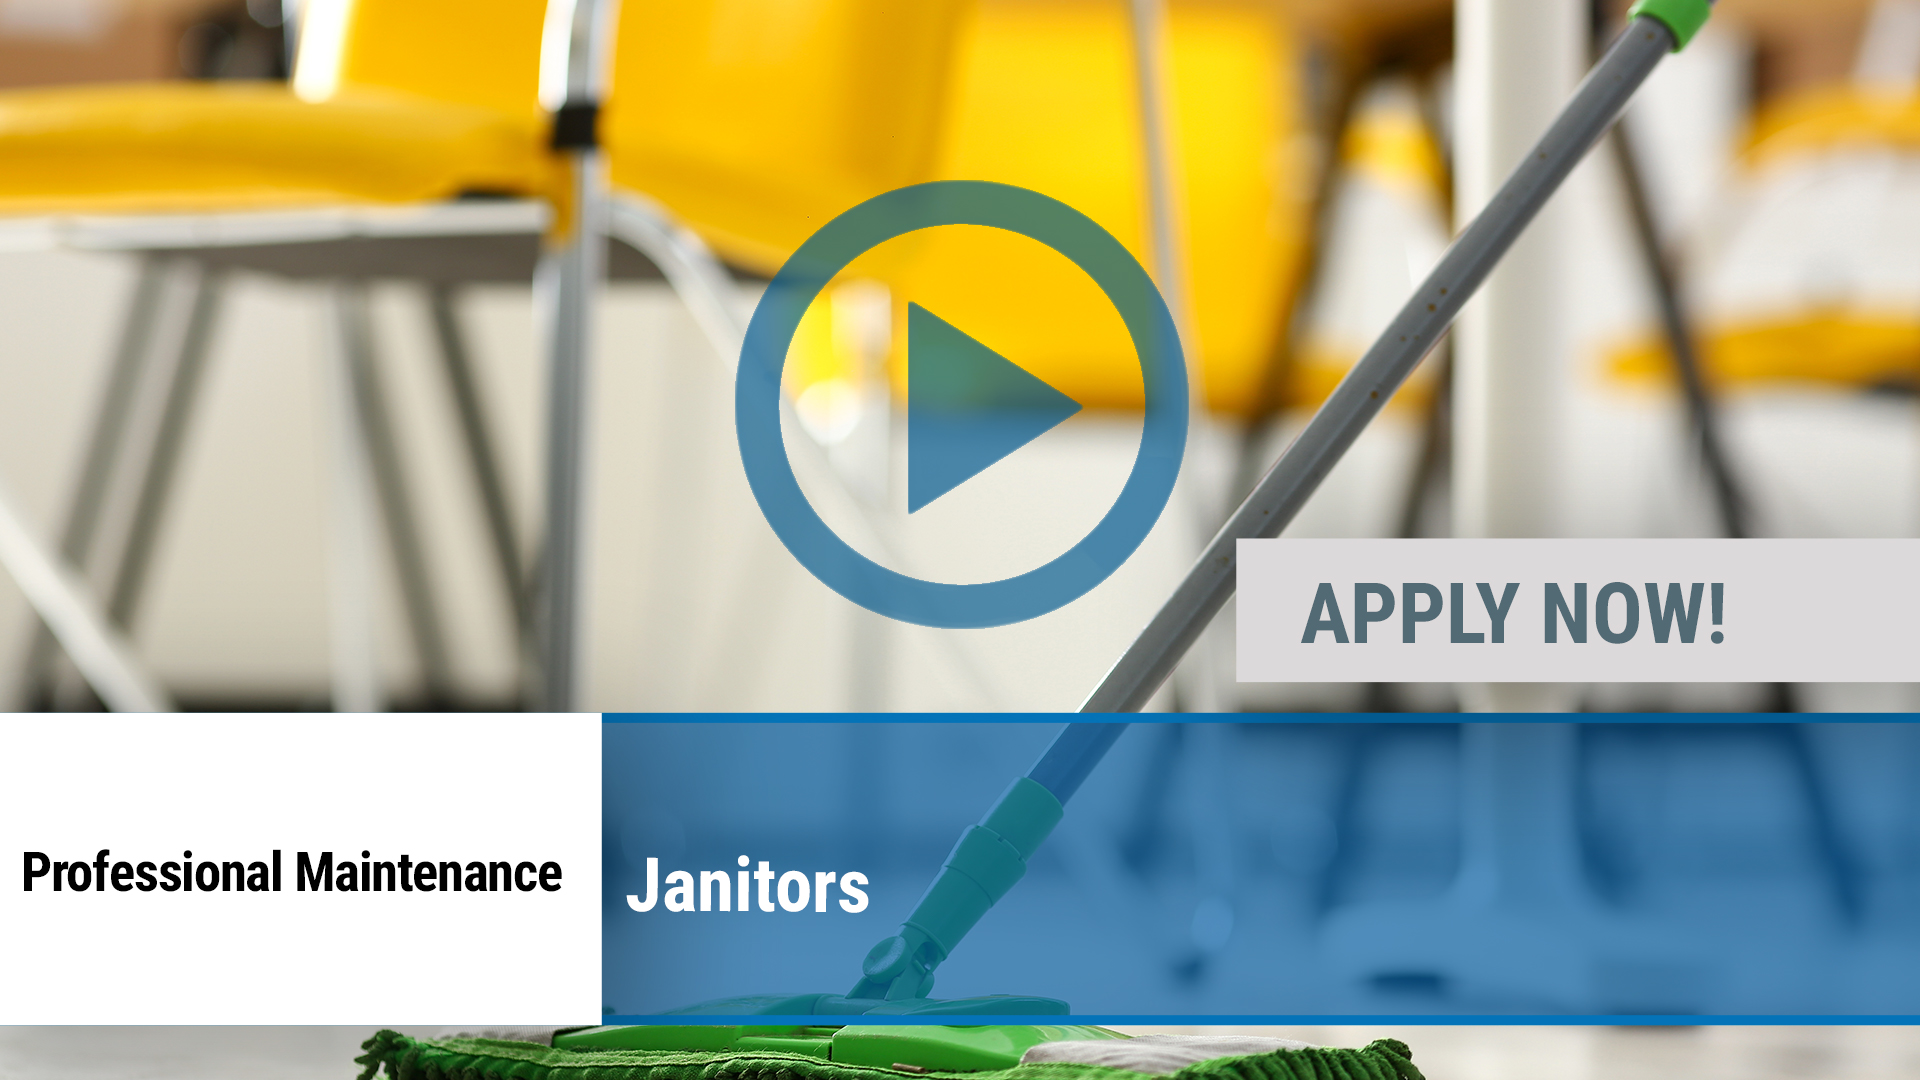 Watch our careers video for available job opening Janitors in Lubbock, TX